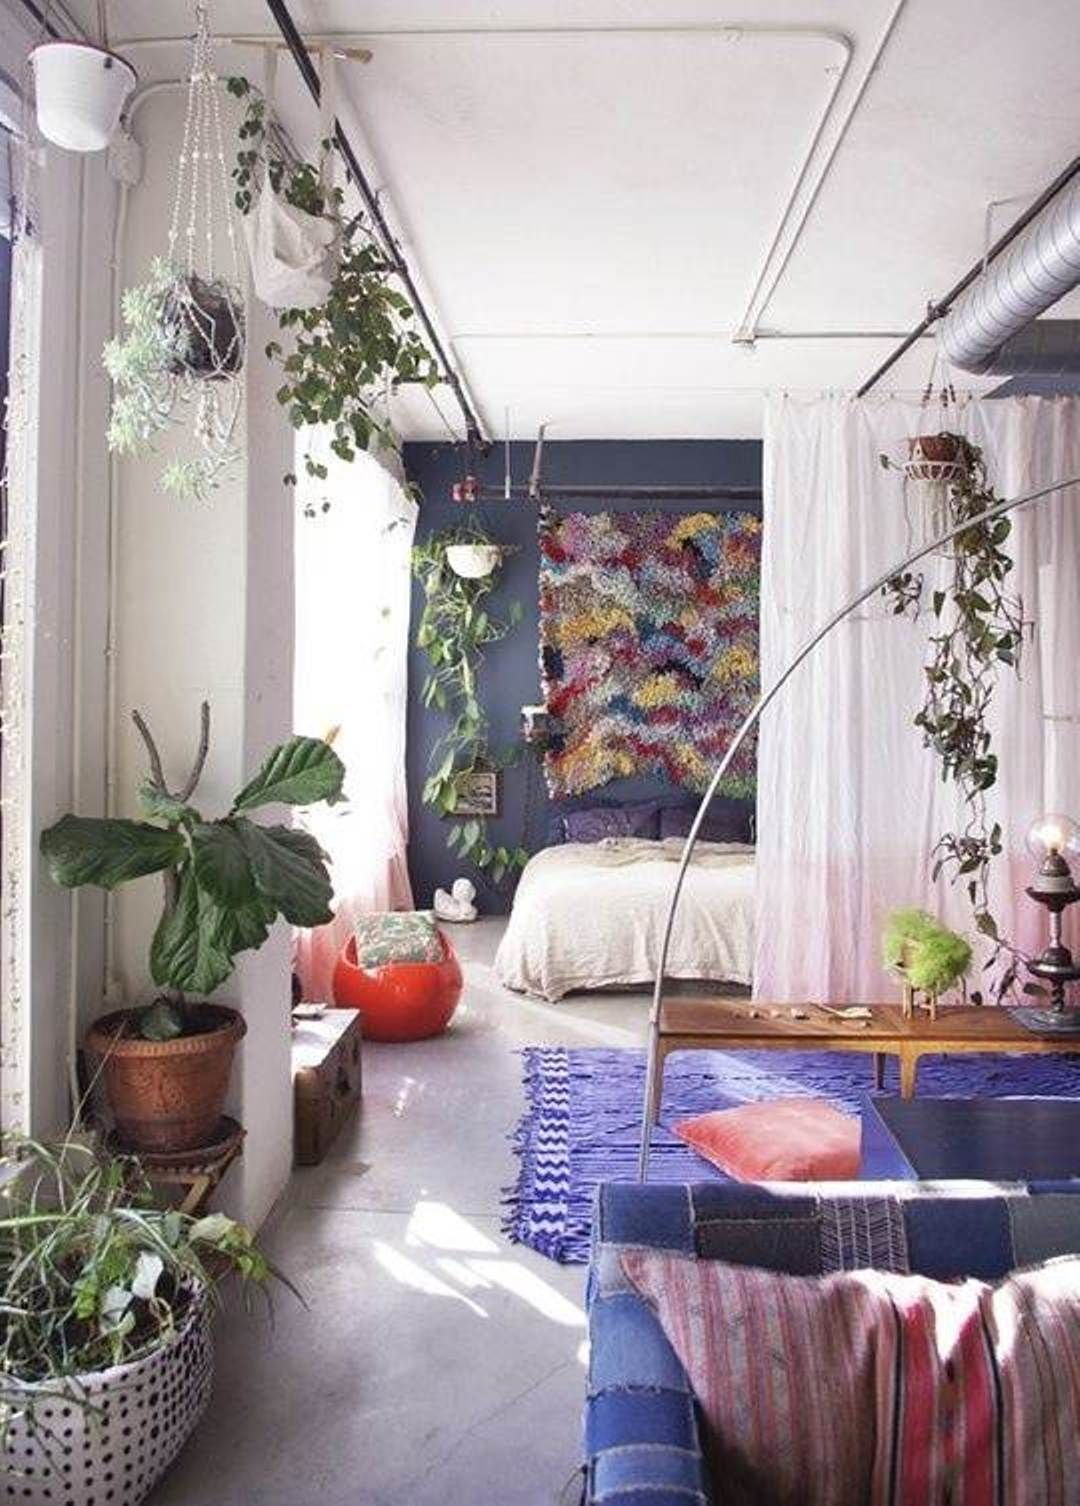 How to Be a Pro at Small Apartment DecoratingThe plant